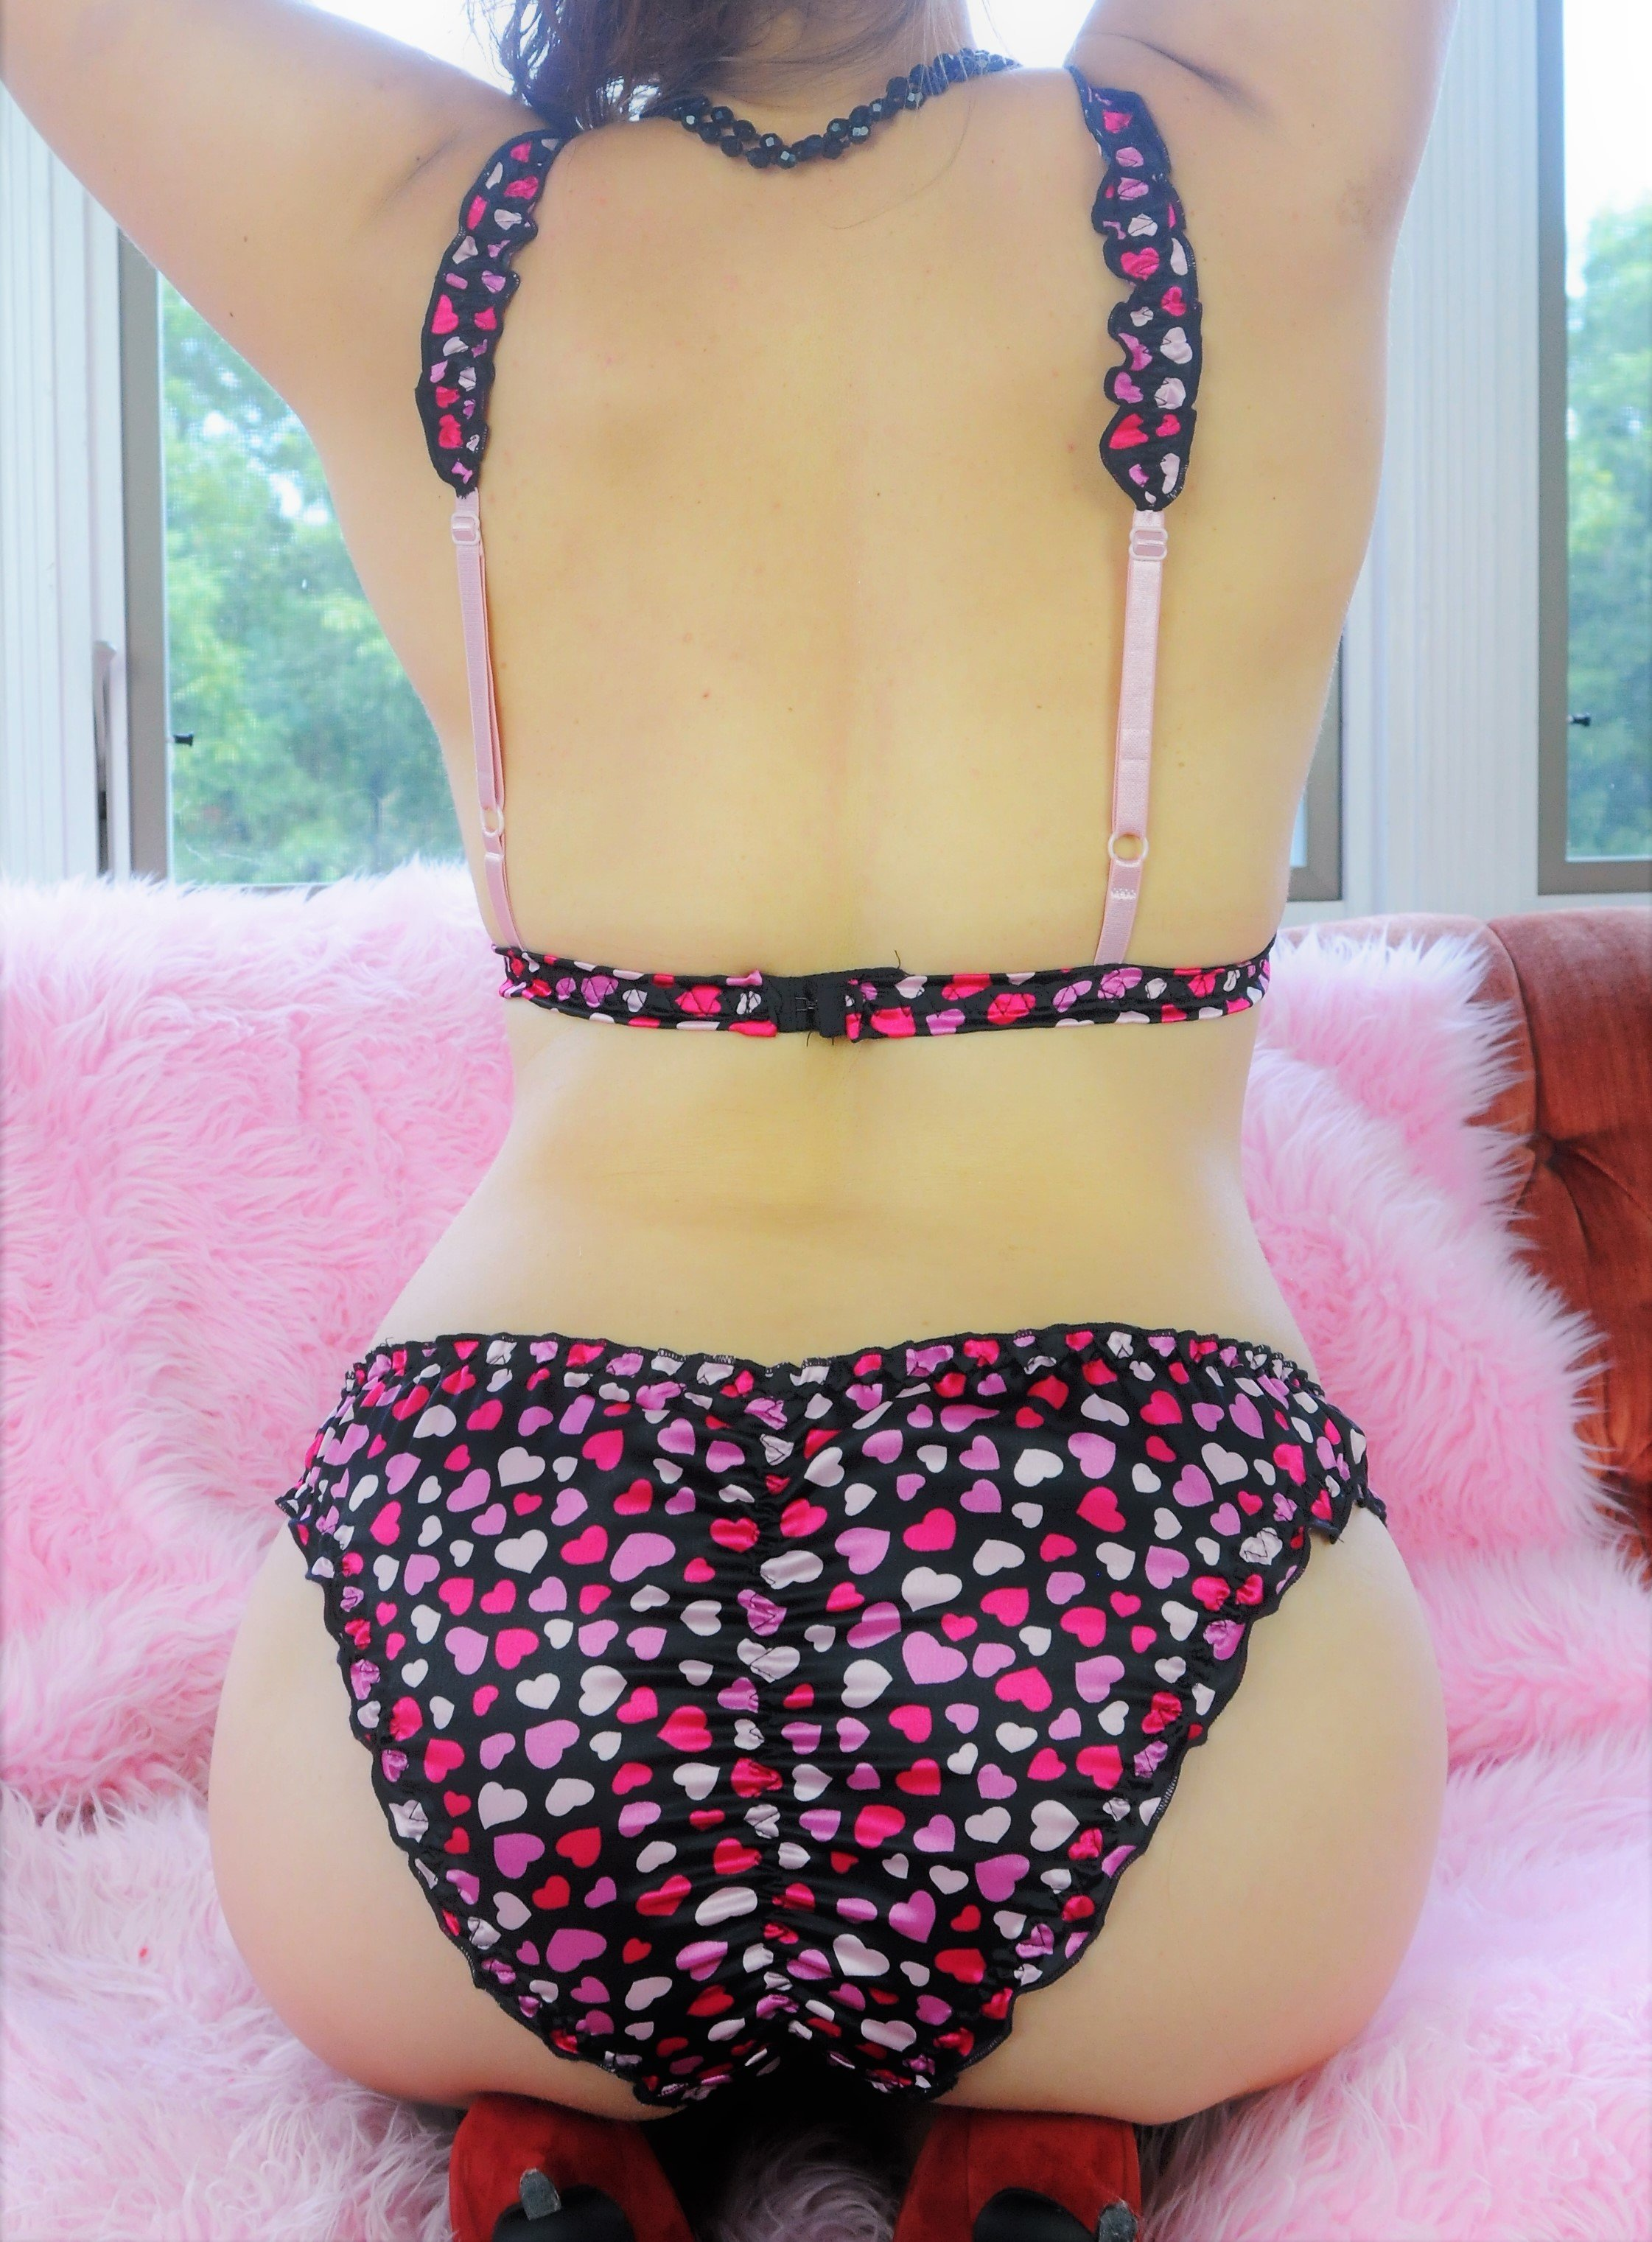 Ania's adorable Bralette and Panties SATIN Heart Print Valentines day set S - XL